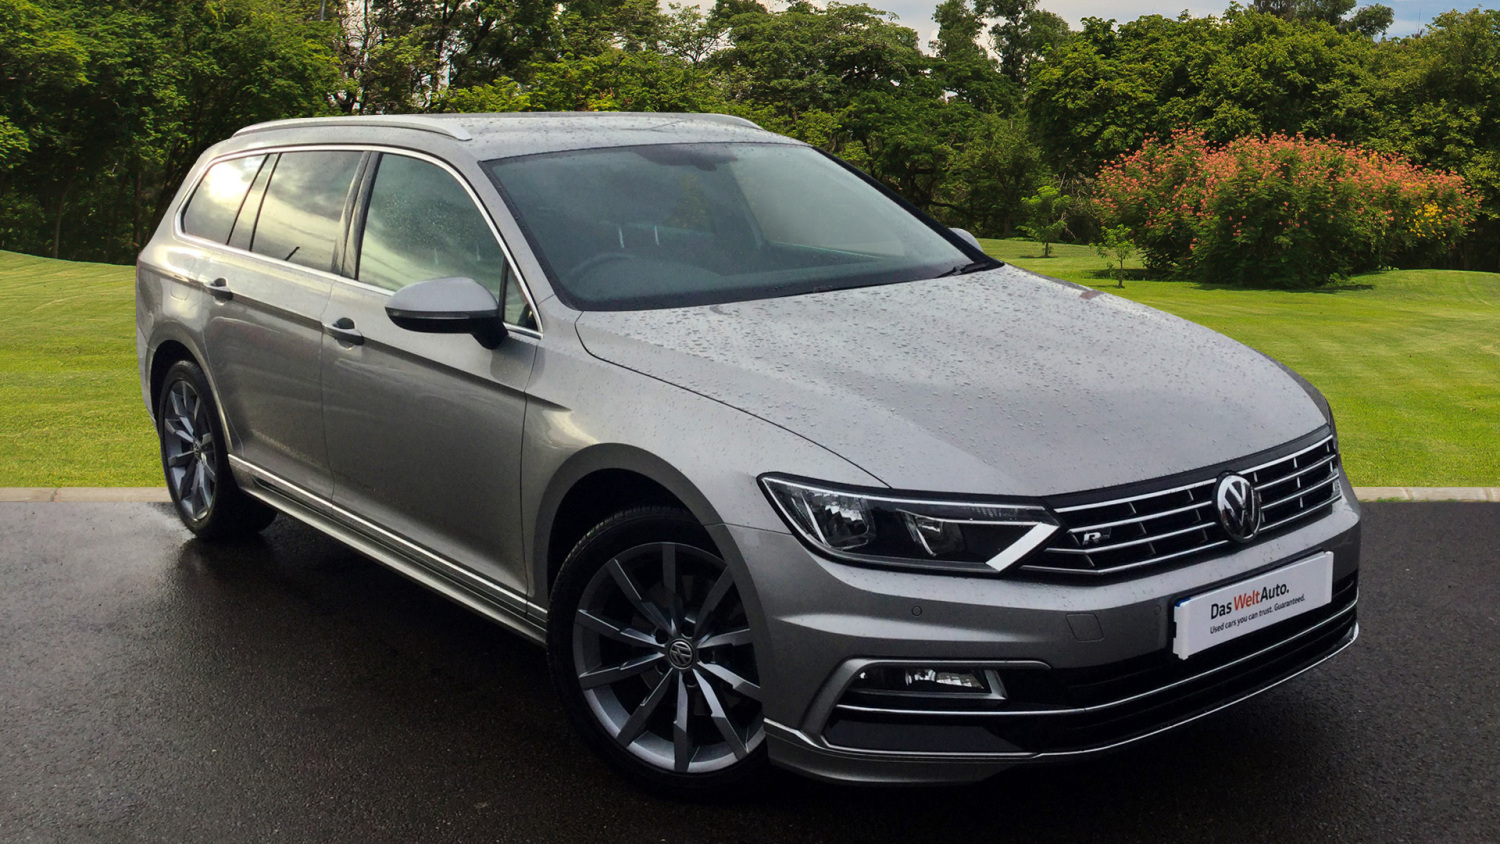 Vw Motability >> Used Volkswagen Passat 2.0 Tdi R Line 5Dr Diesel Estate for Sale in Scotland | Macklin Motors